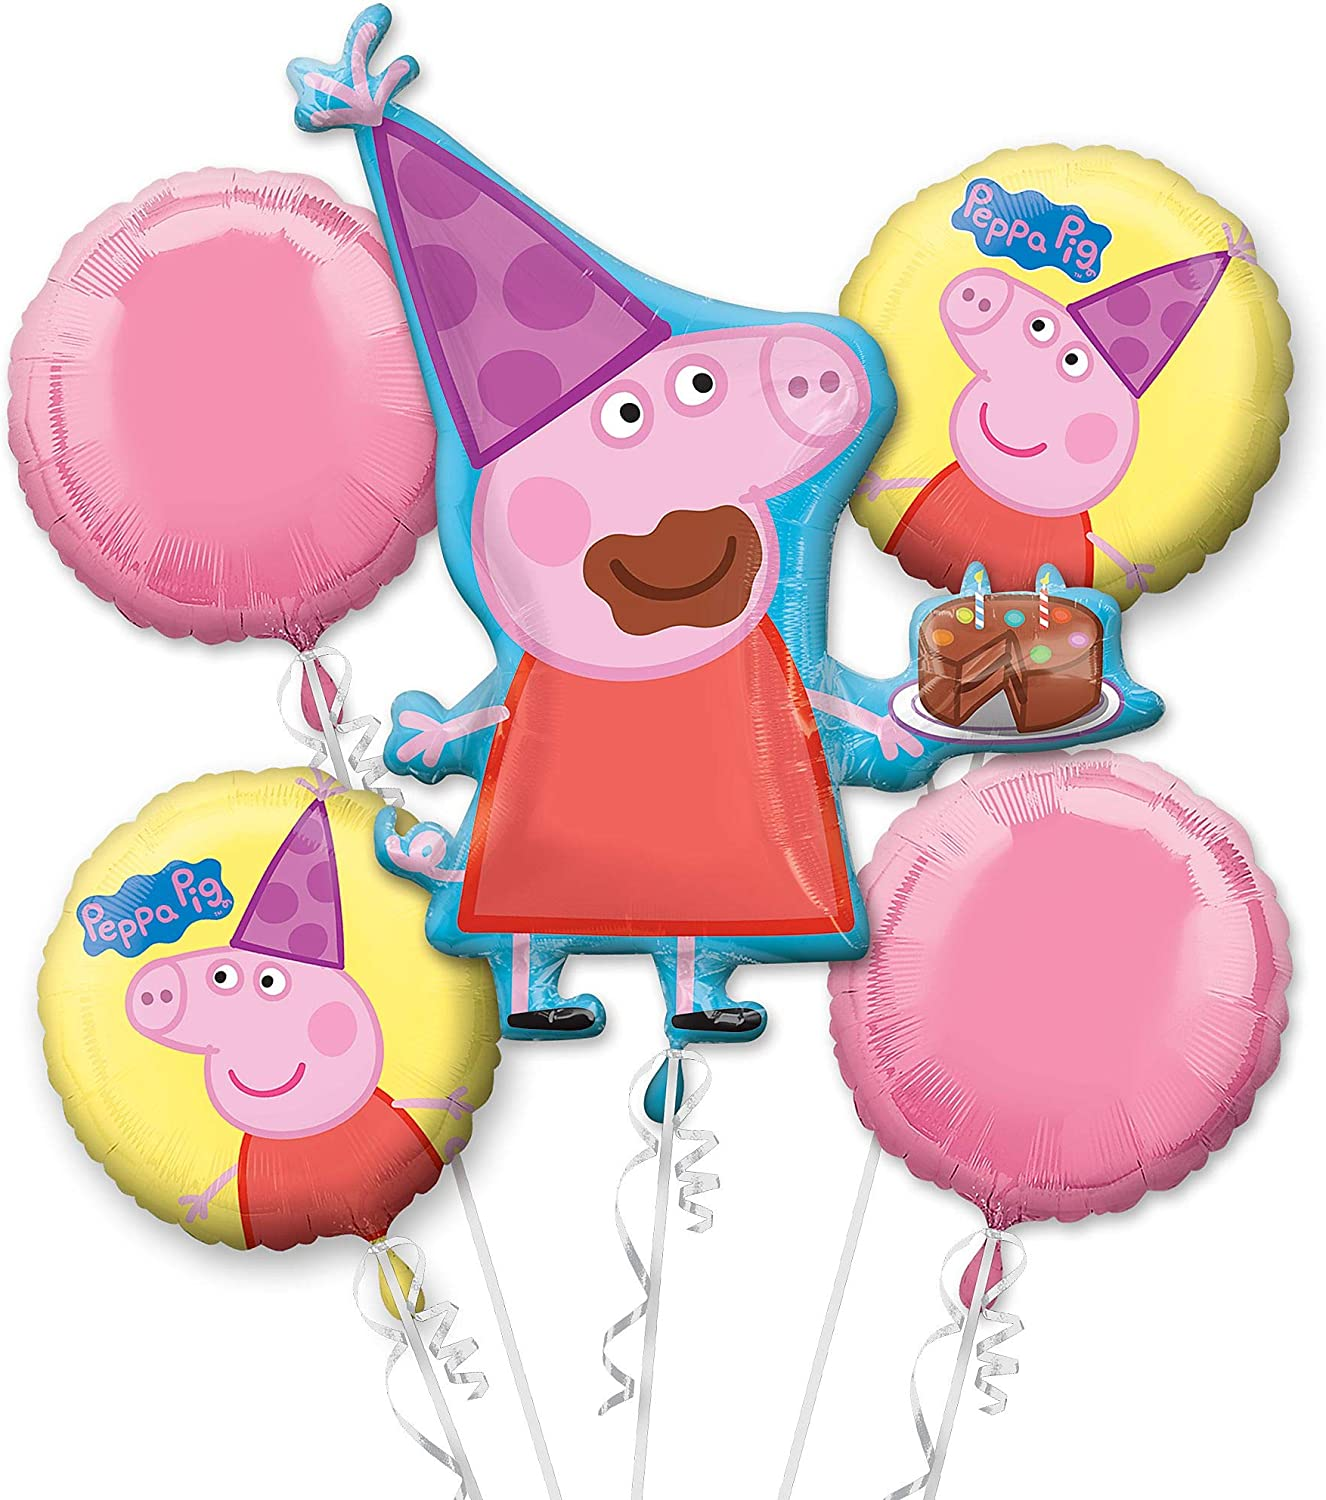 PEPPA PIG PEPPA 5 FOIL BALLOON BOUQUET BIRTHDAY PARTY DISPLAY